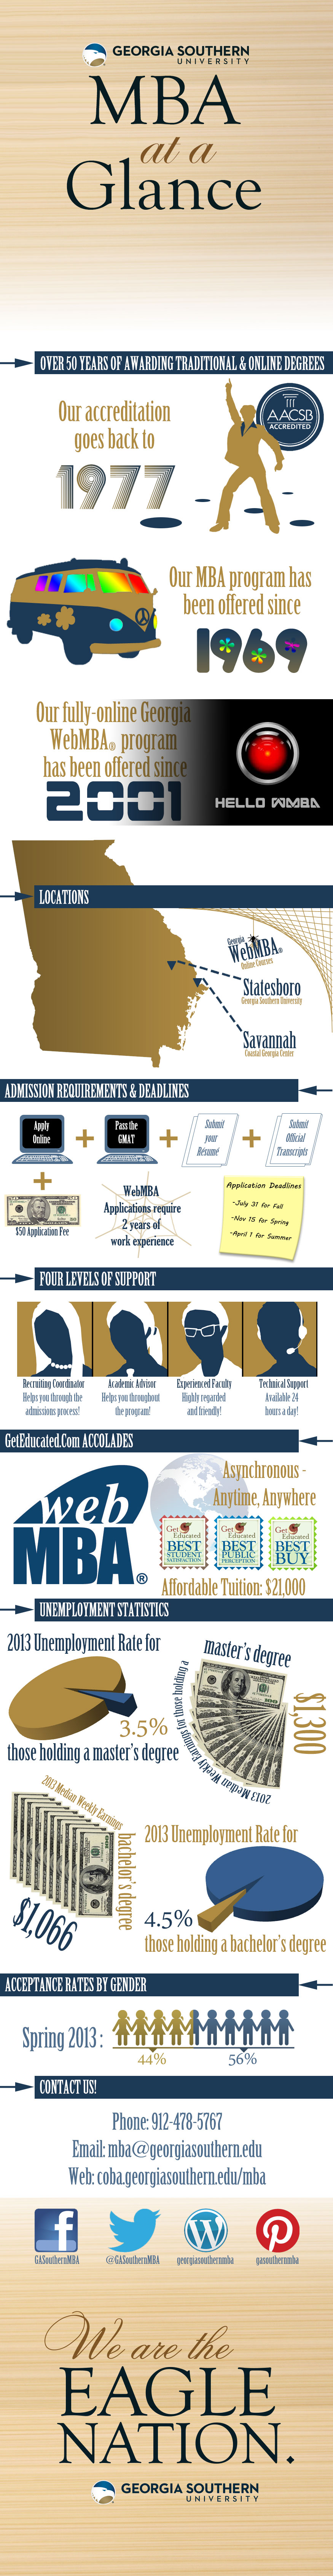 A Fun Georgia Southern Mba Infographic Georgia Southern Masters In Business Administration Mba